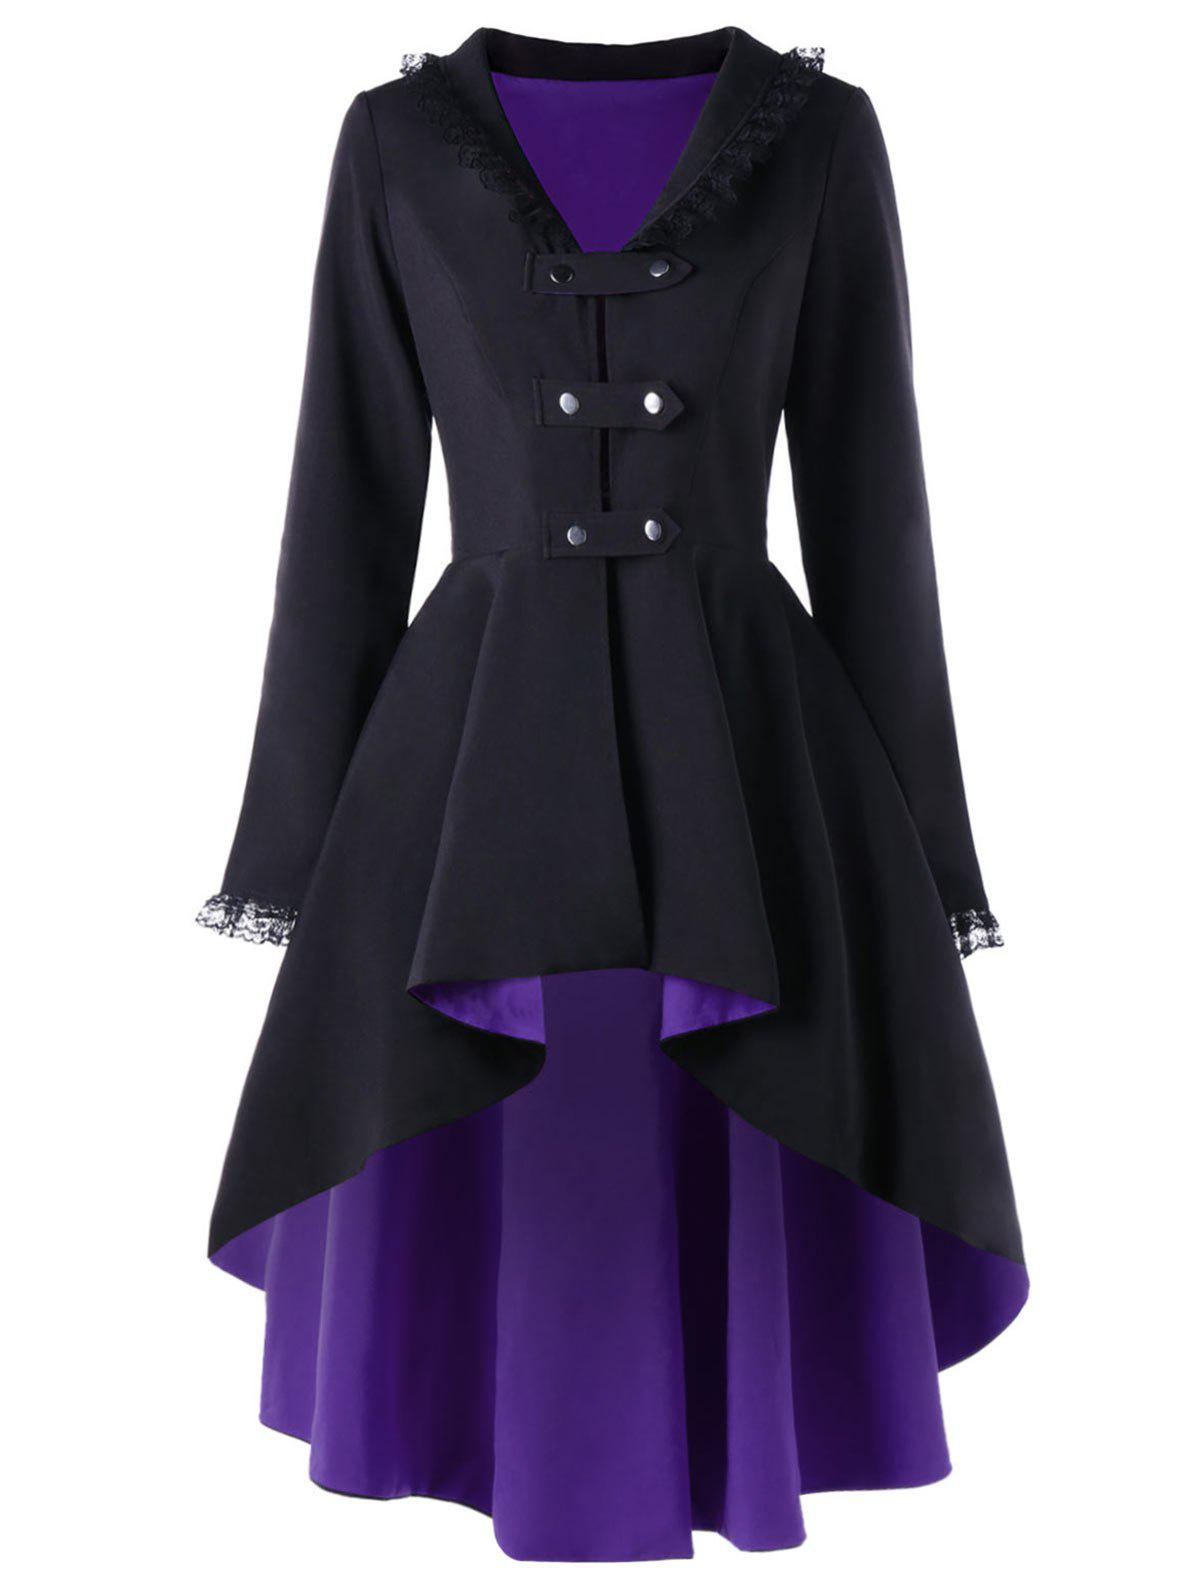 Fancy High Low Lace Trimmed Gothic Coat